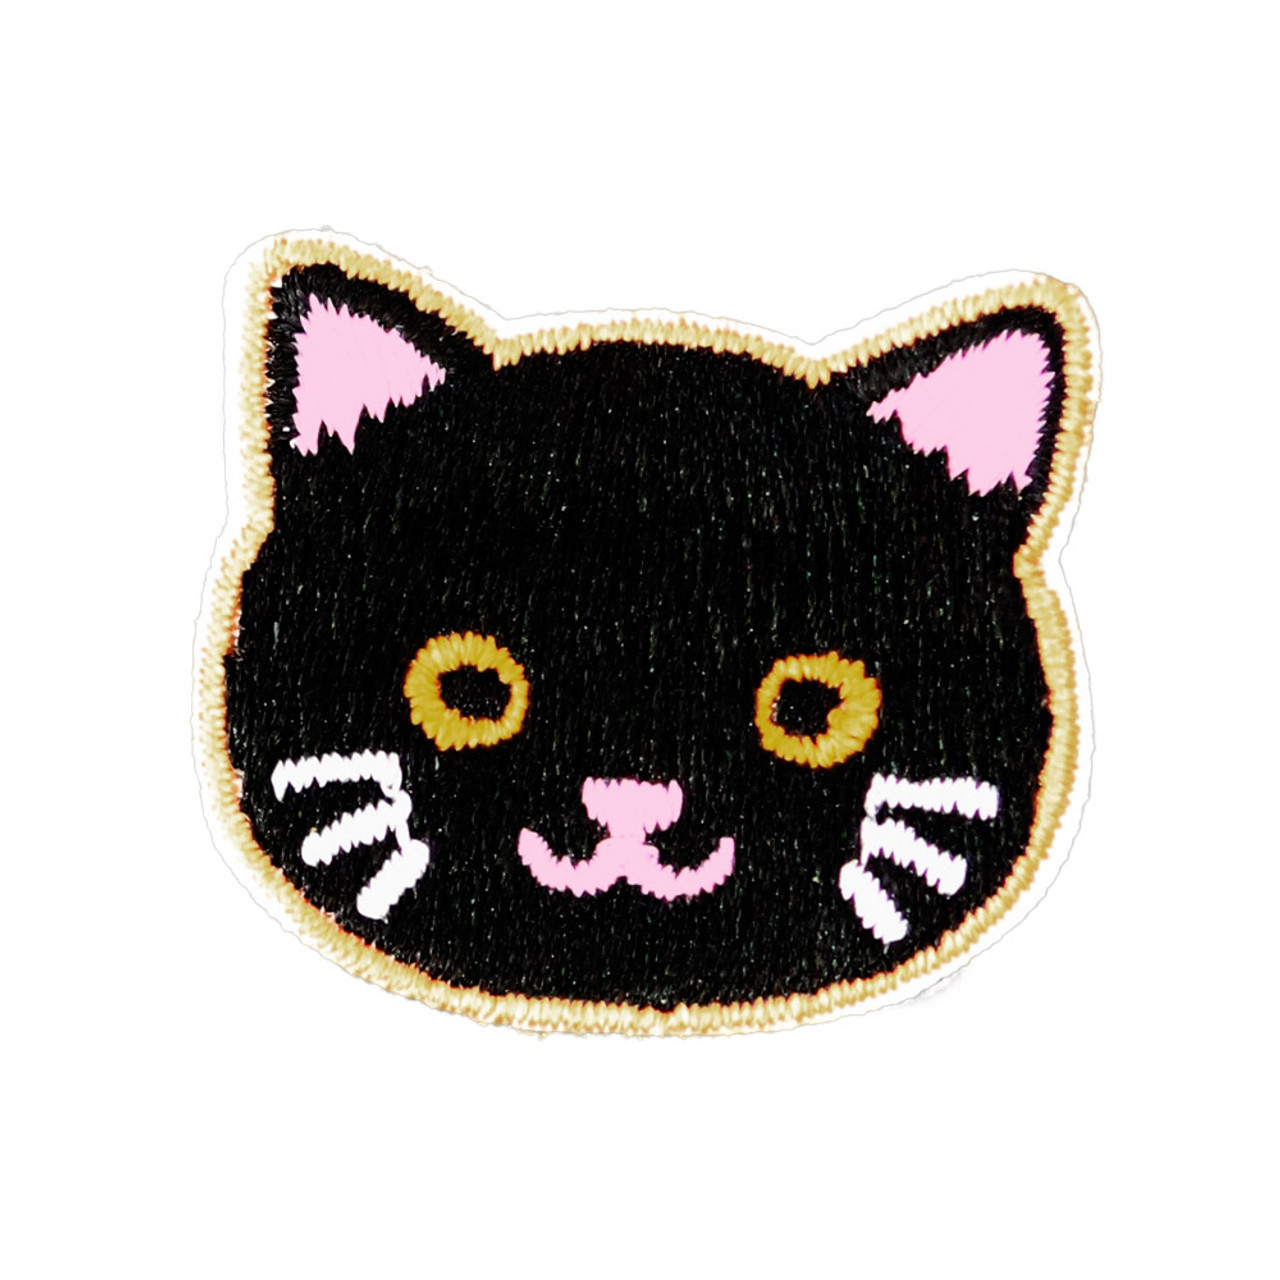 Cats Family Black Cat Iron On Patch ( Front View )